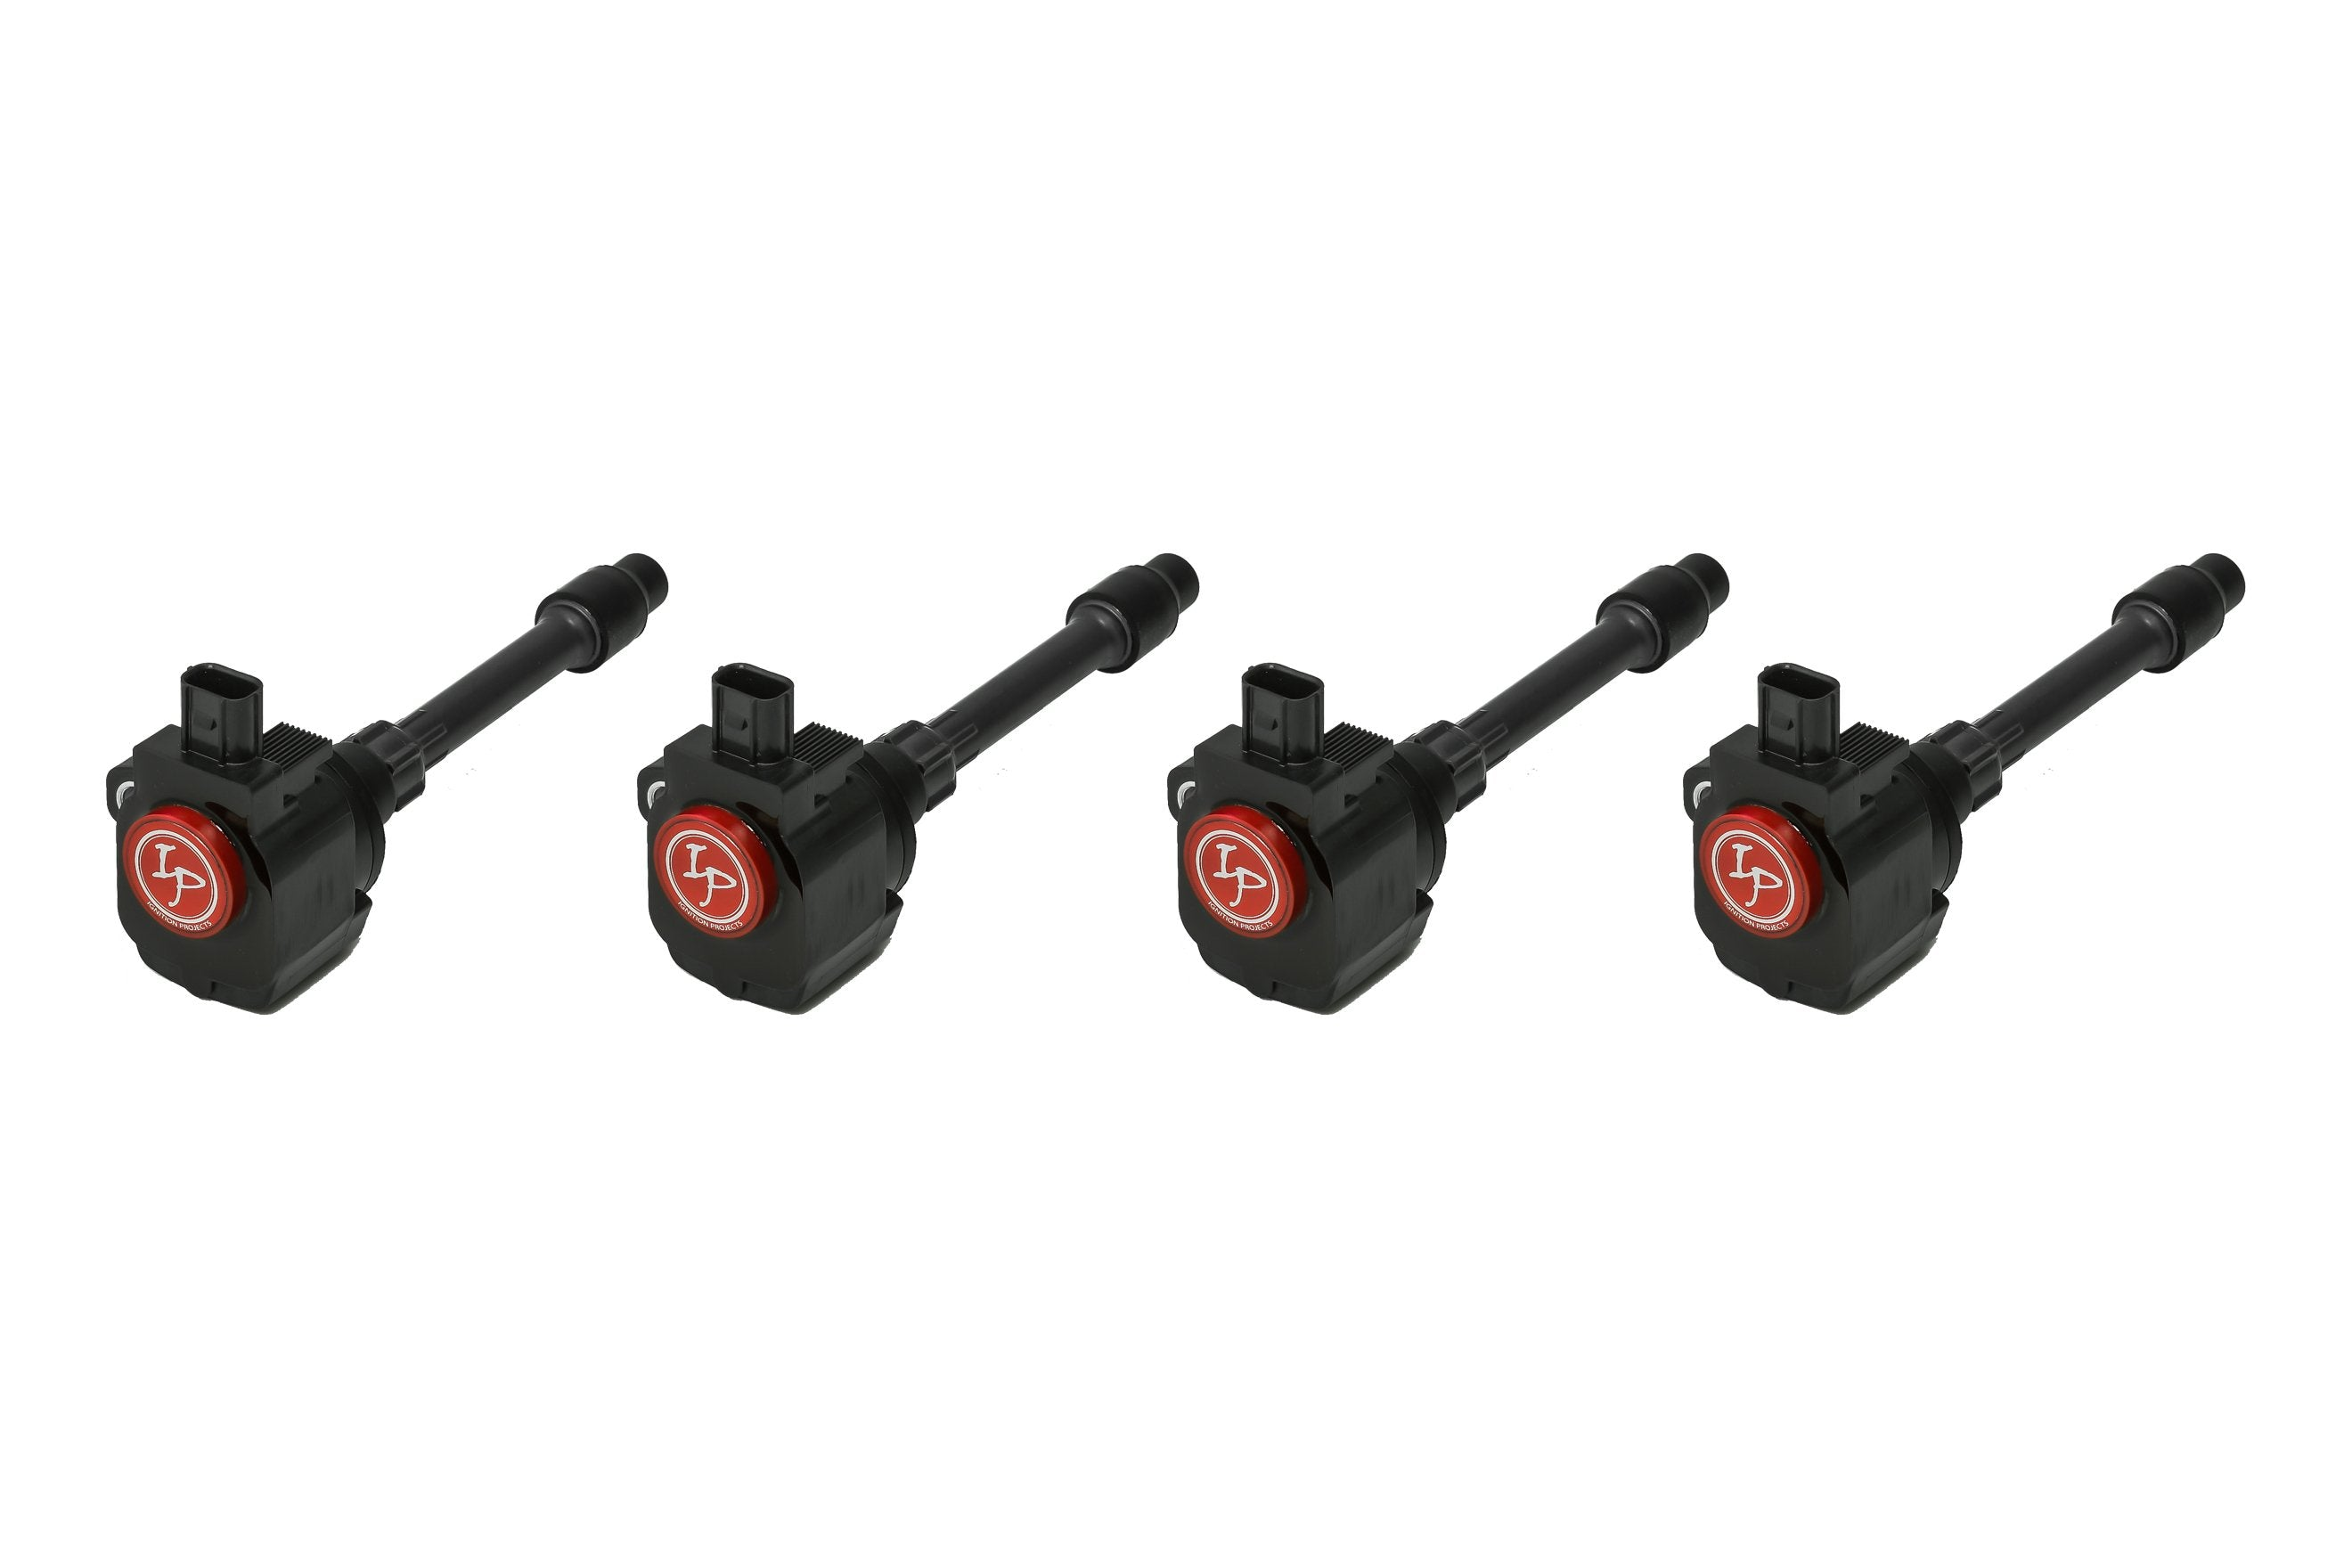 Ignition Projects - IP Coil Set for 18+ Accord 1.5T / 2.0T - K20C, L15B7 - IP-A127403